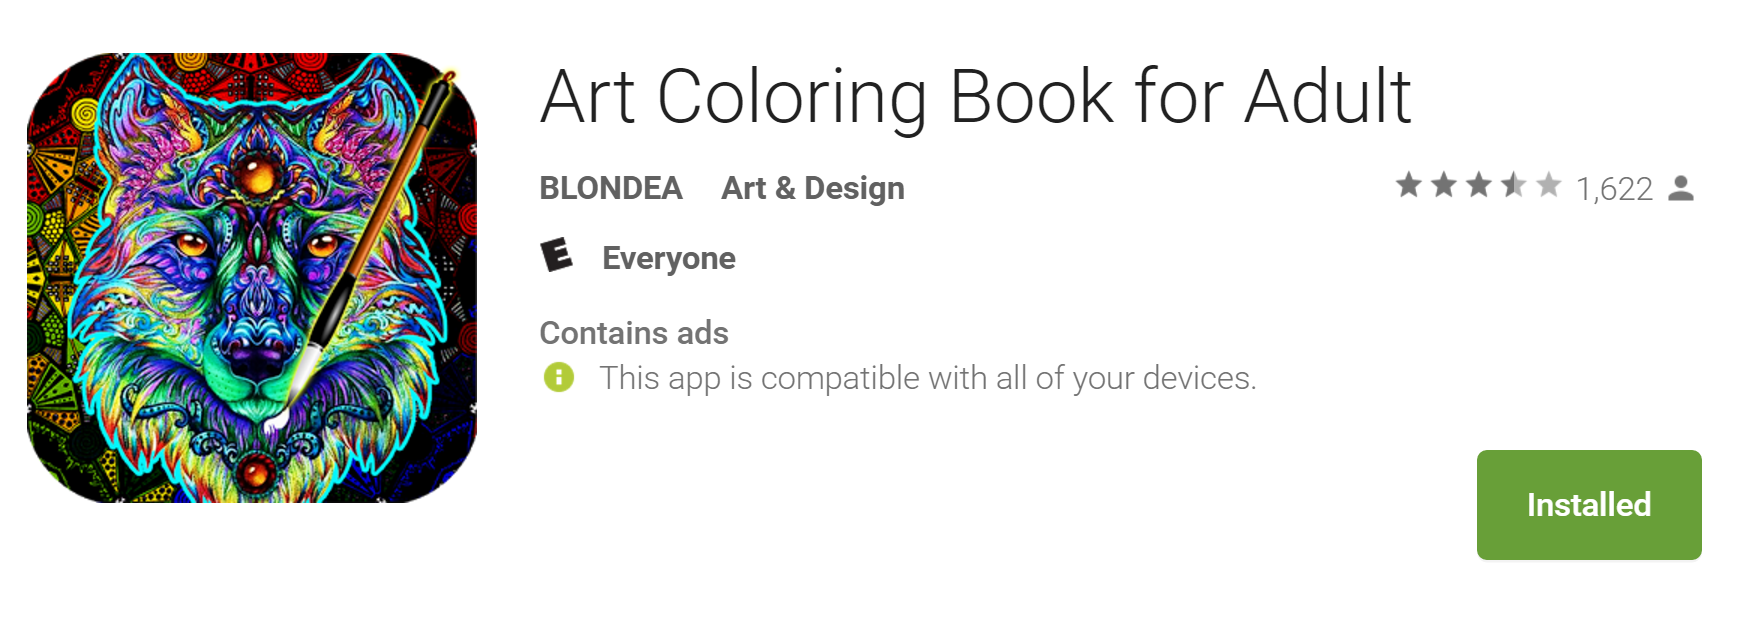 Art Coloring Book For Adults Offers Stress Relief But Bring Your